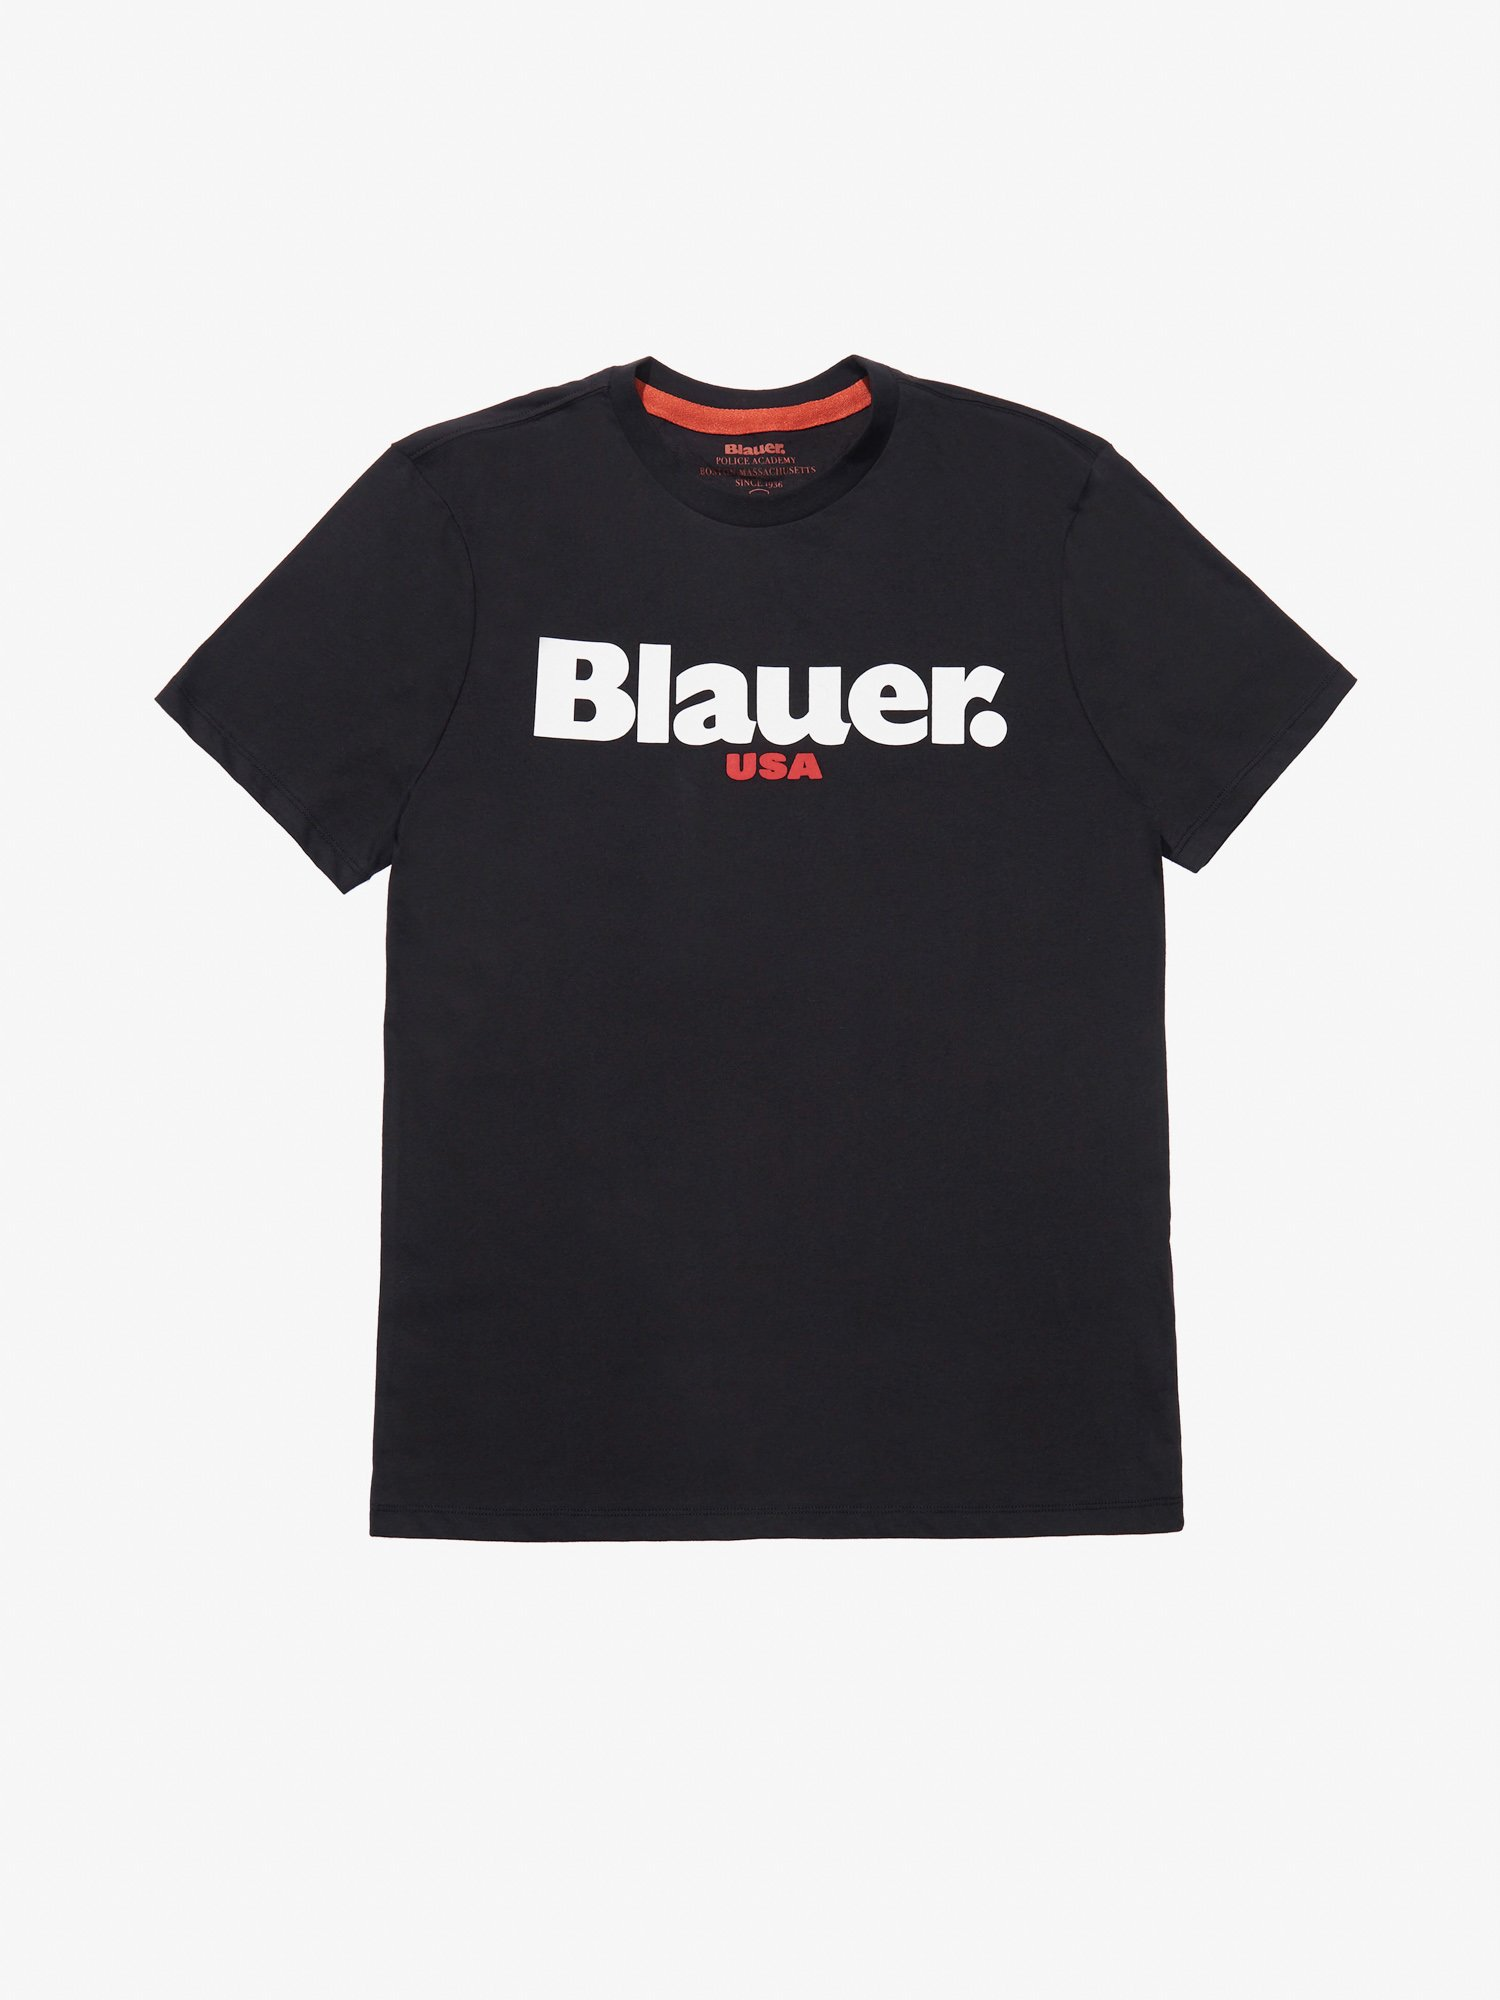 T-SHIRT CARBON-WASHED BLAUER USA - Blauer